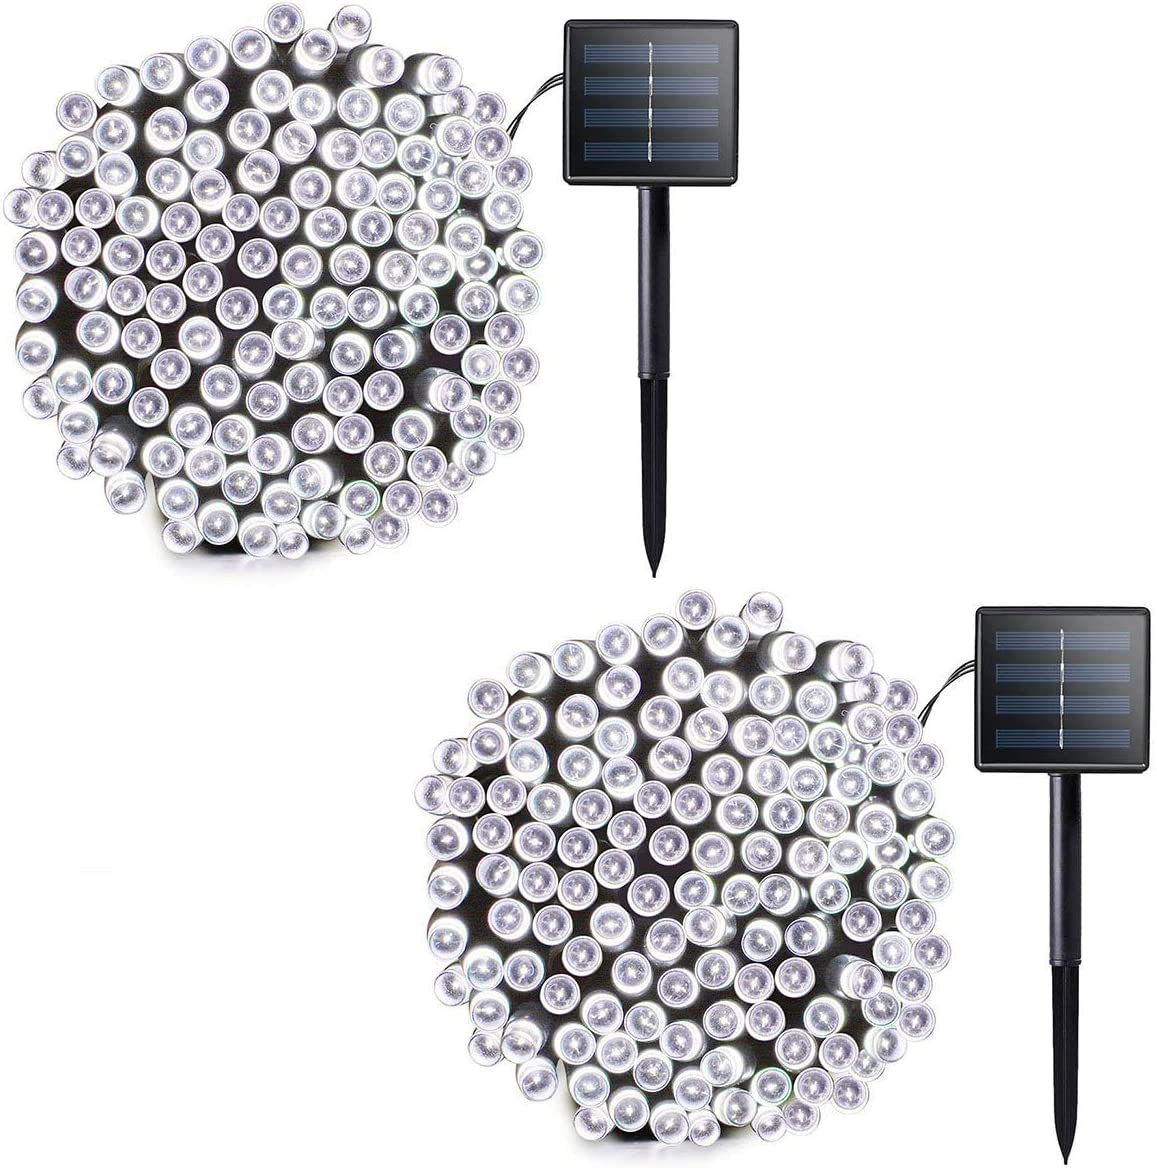 Outdoor Solar Christmas String Lights Ambiance Lighting 72ft 200 LED Waterproof Solar Fairy Mini String Lights Decoration for Patio, Gardens, Homes, Party, Wedding, Holiday(White-2 Pack 400LED)